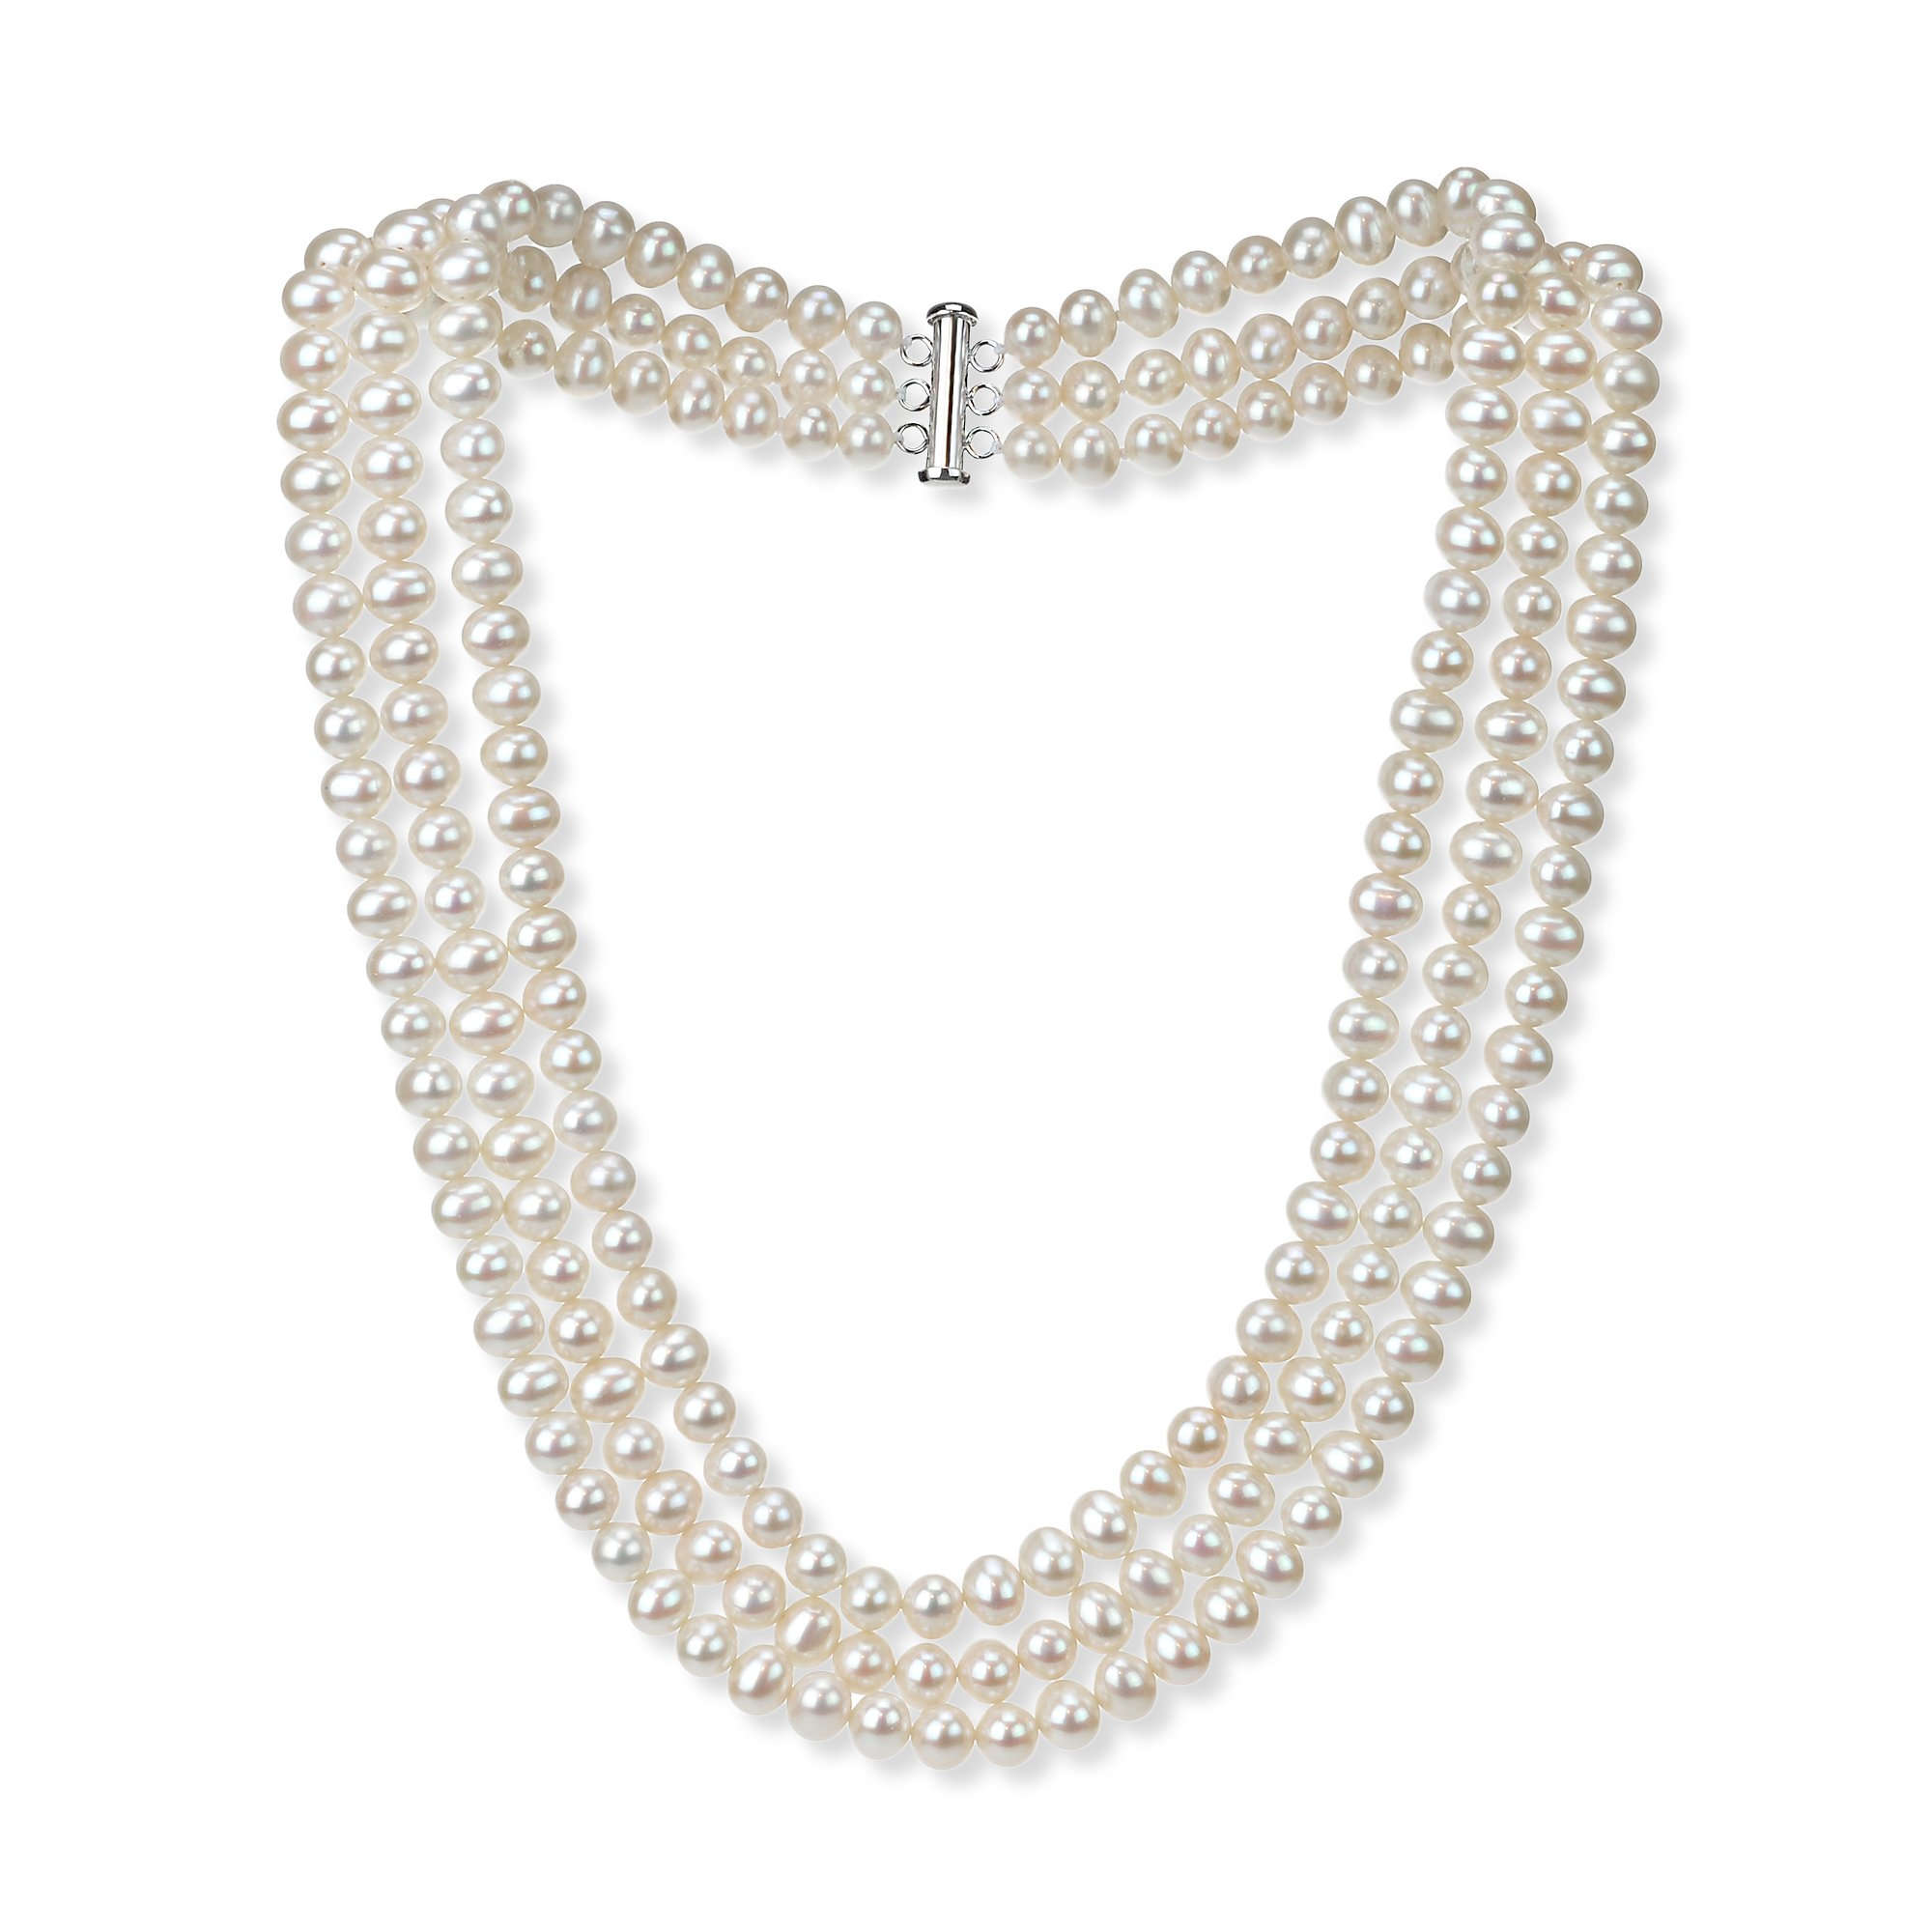 Sterling Silver 6.5-7mm 3-rows White Freshwater Cultured High Luster Pearl Necklace, 18''